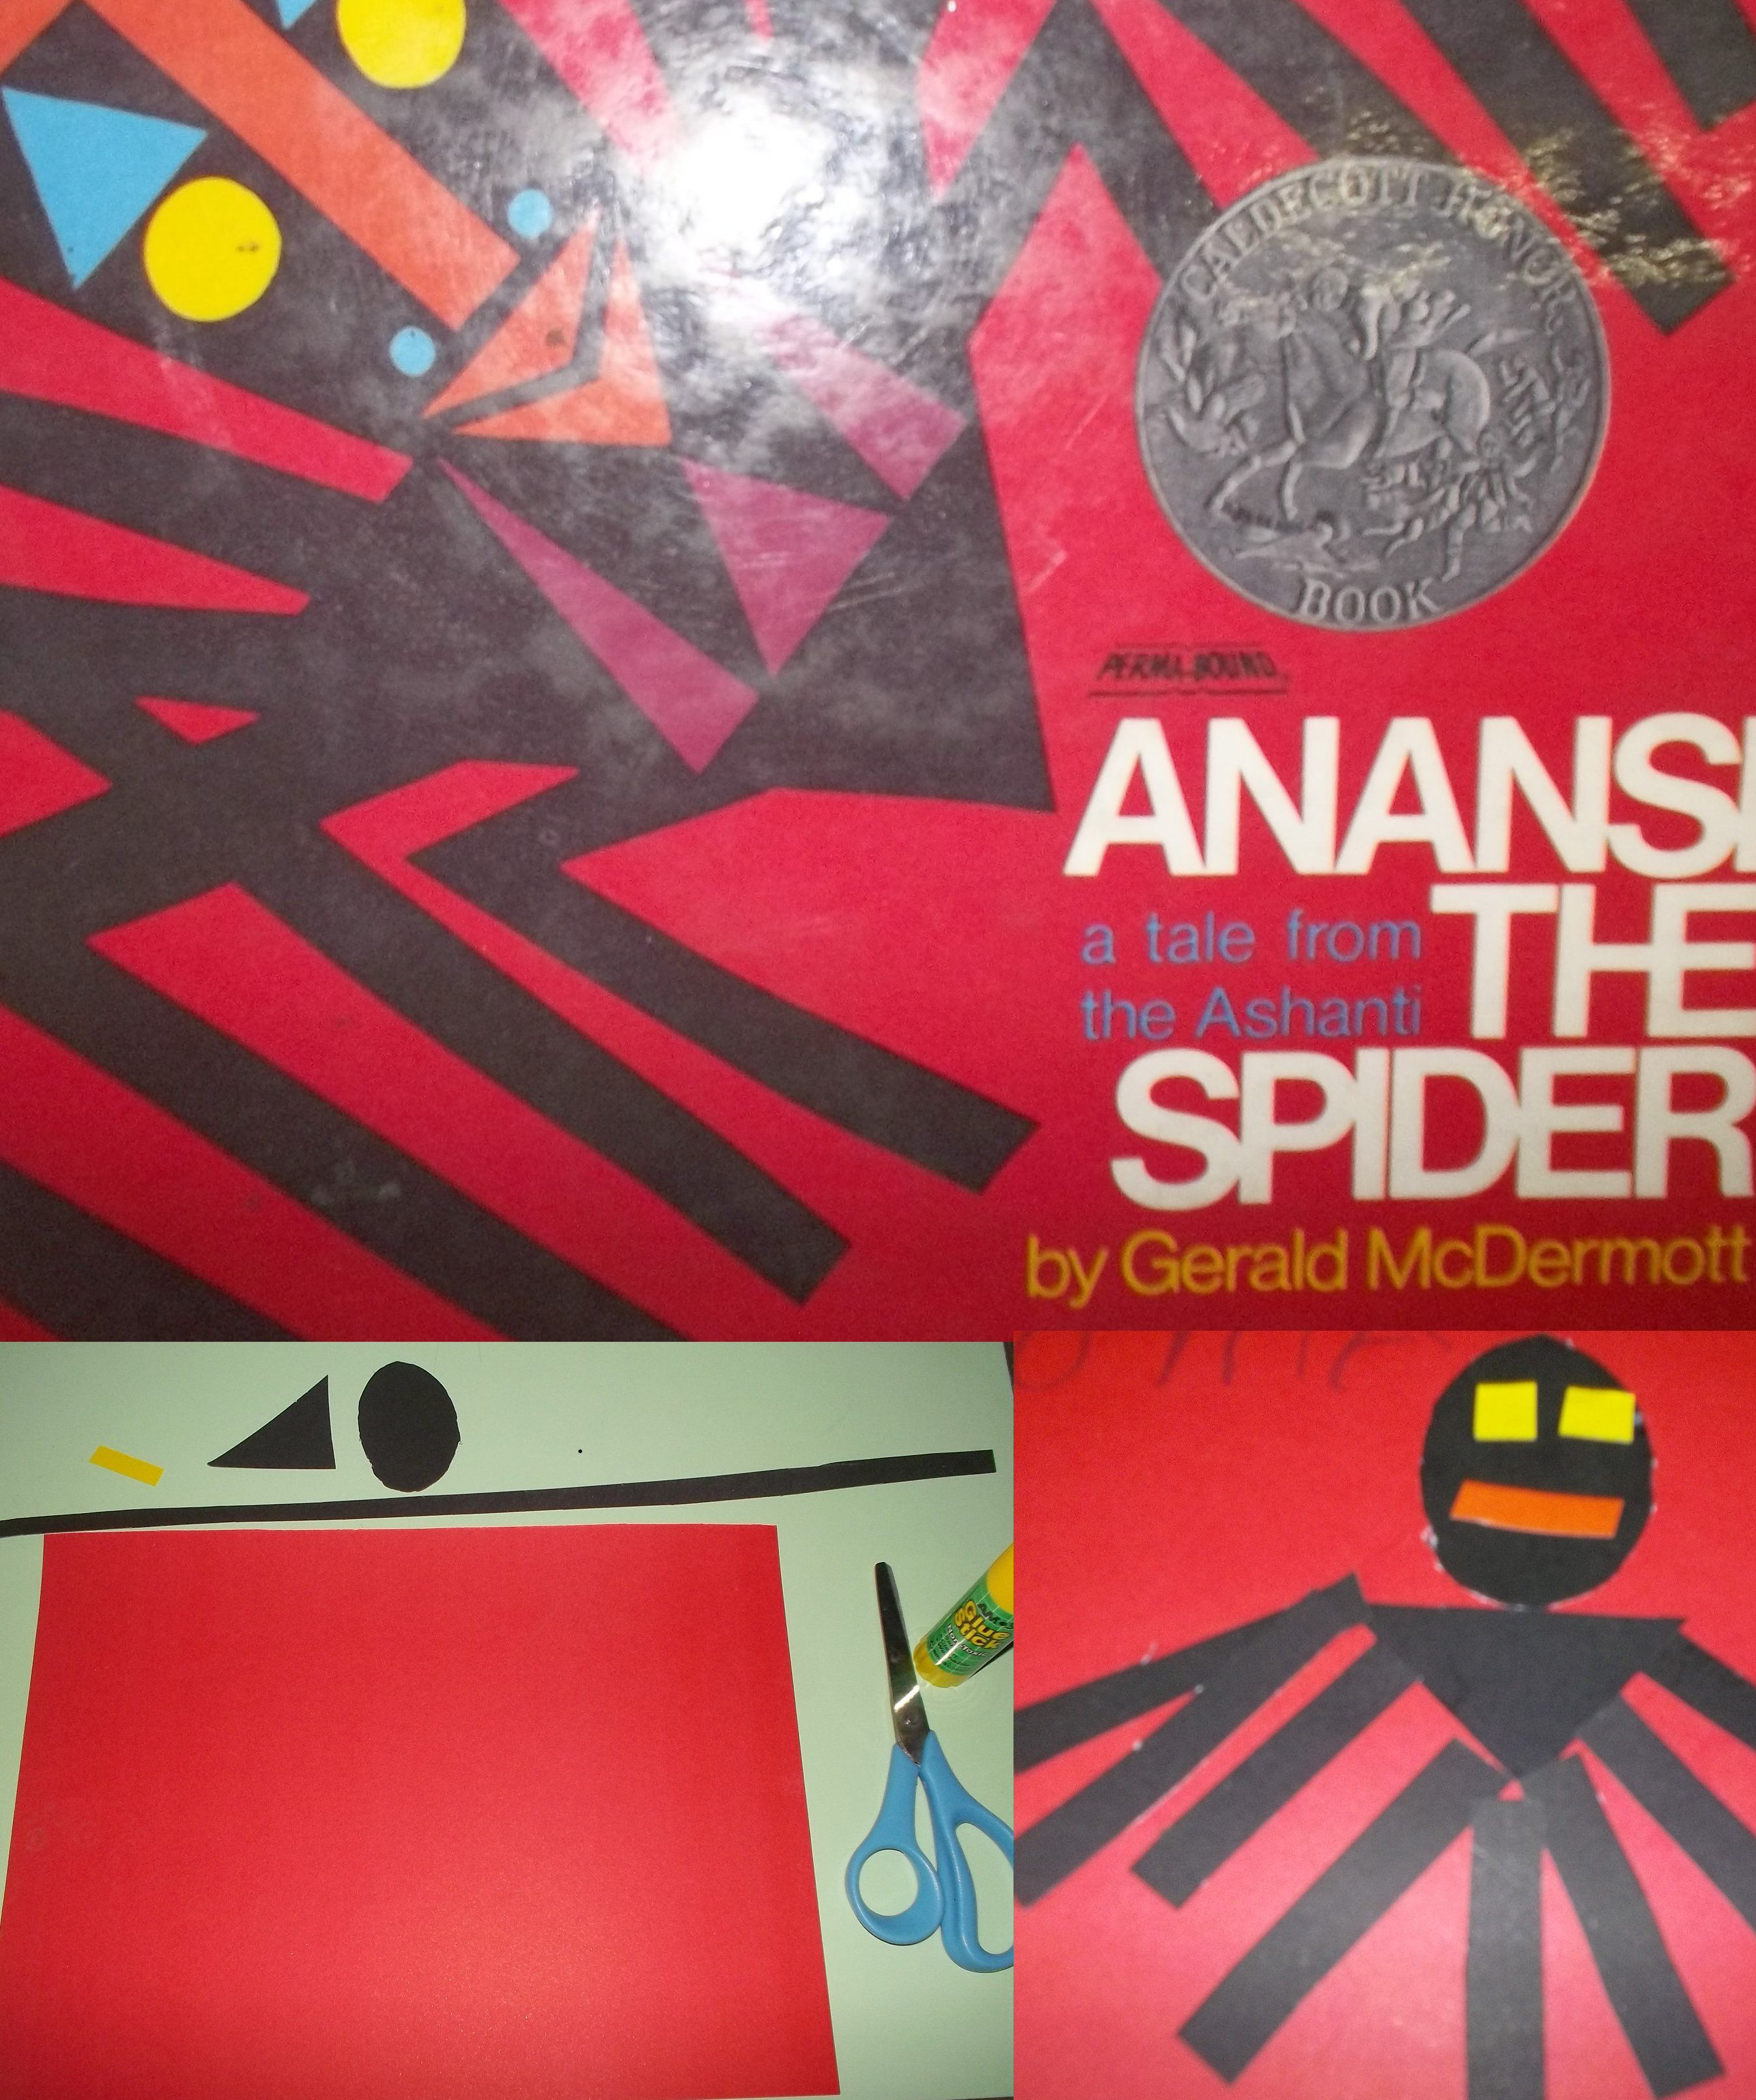 Anansi the spider. African story and spider craft: Red construction ...